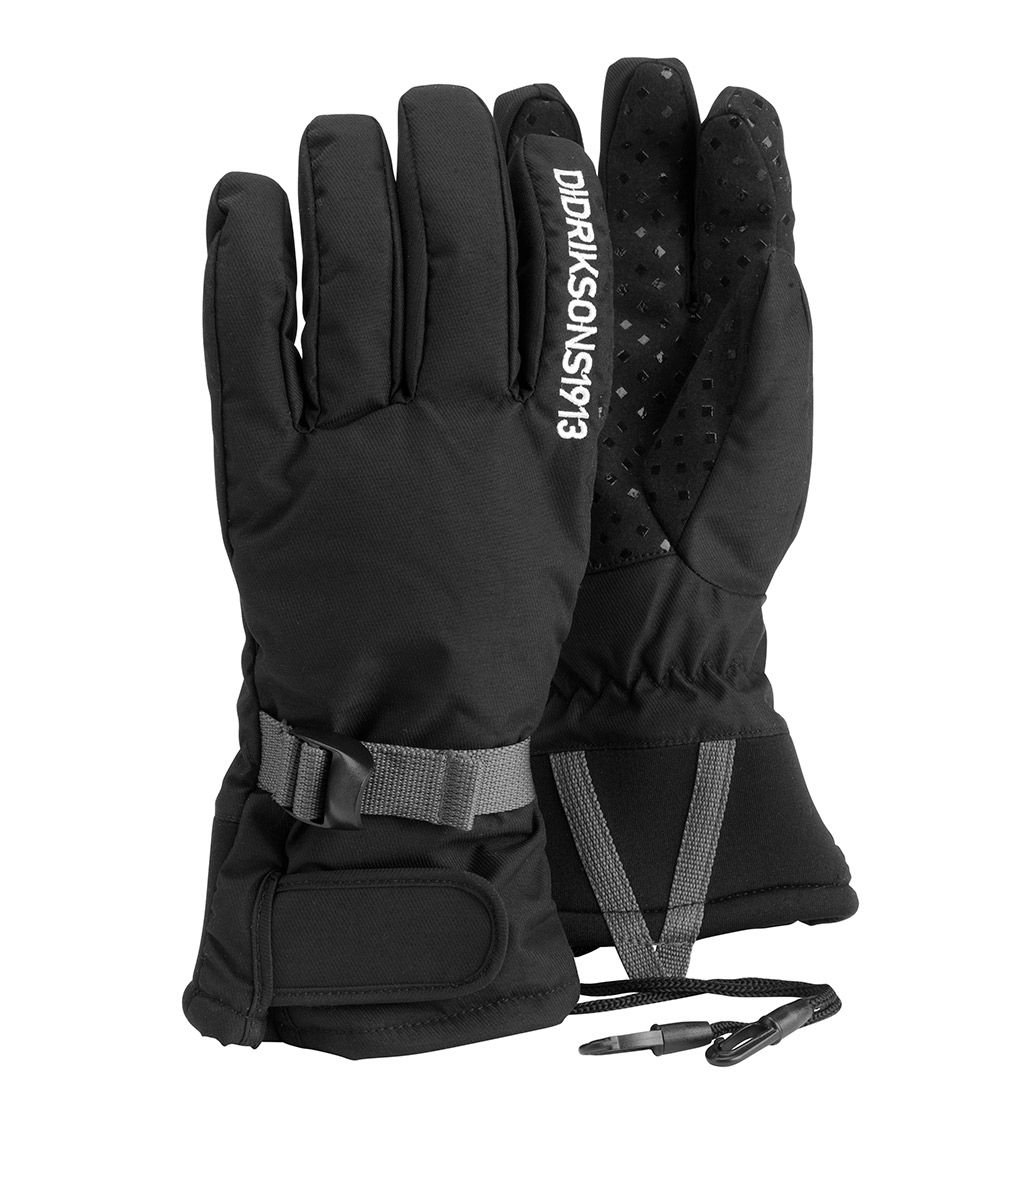 DIDRIKSONS Youth Gloves 501177 FIVE, Black 34.99